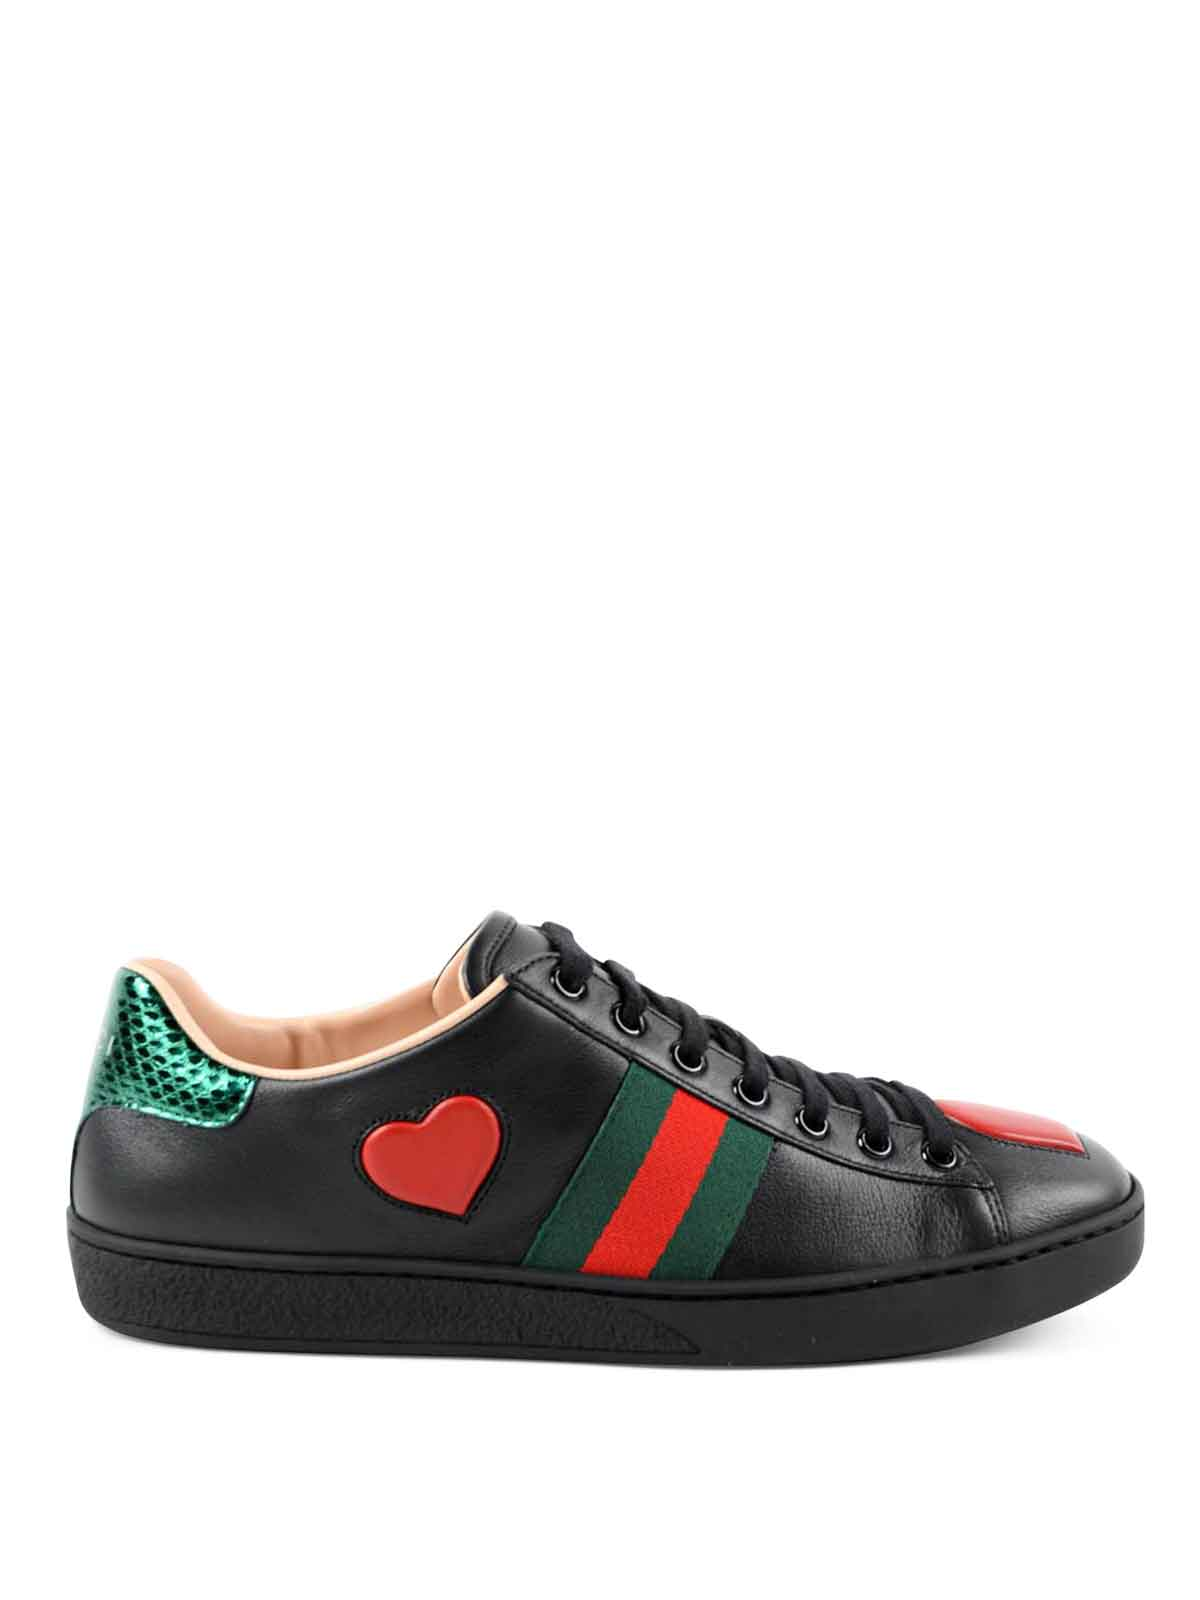 ace embroidered sneakers by gucci trainers ikrix. Black Bedroom Furniture Sets. Home Design Ideas